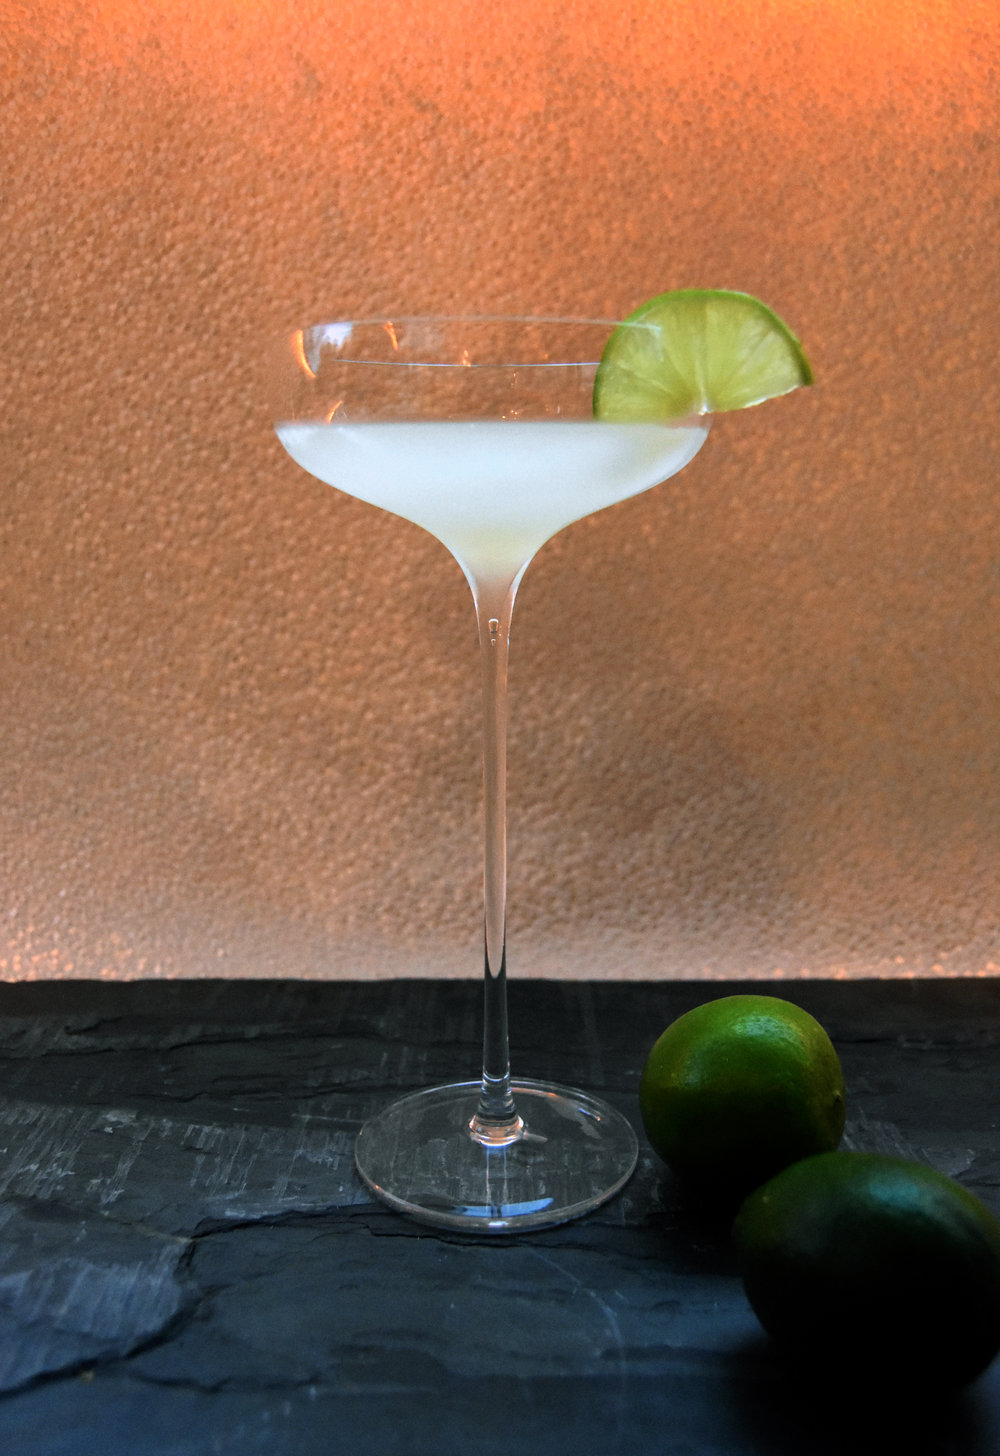 White rum daquiri - made with J Wray